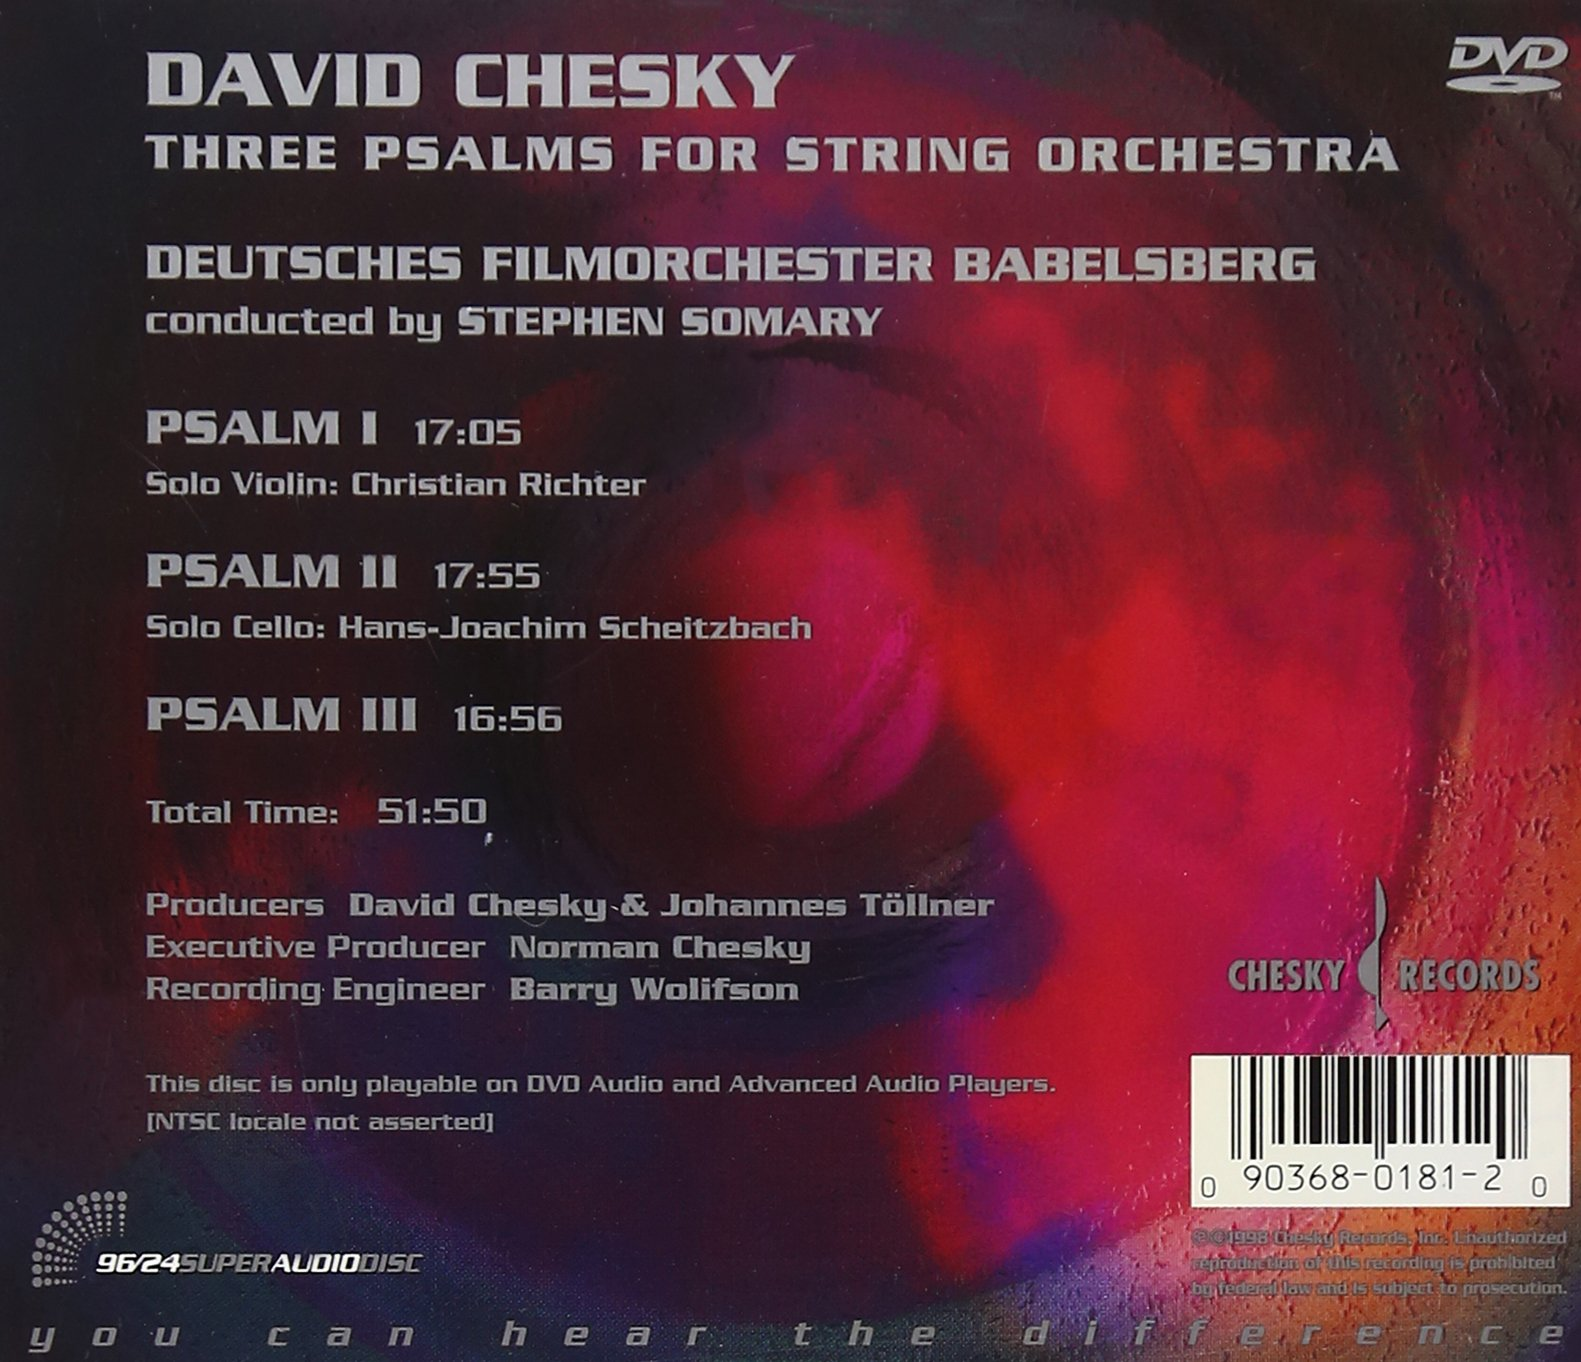 Three Psalms for String Orchestra by Chesky Records